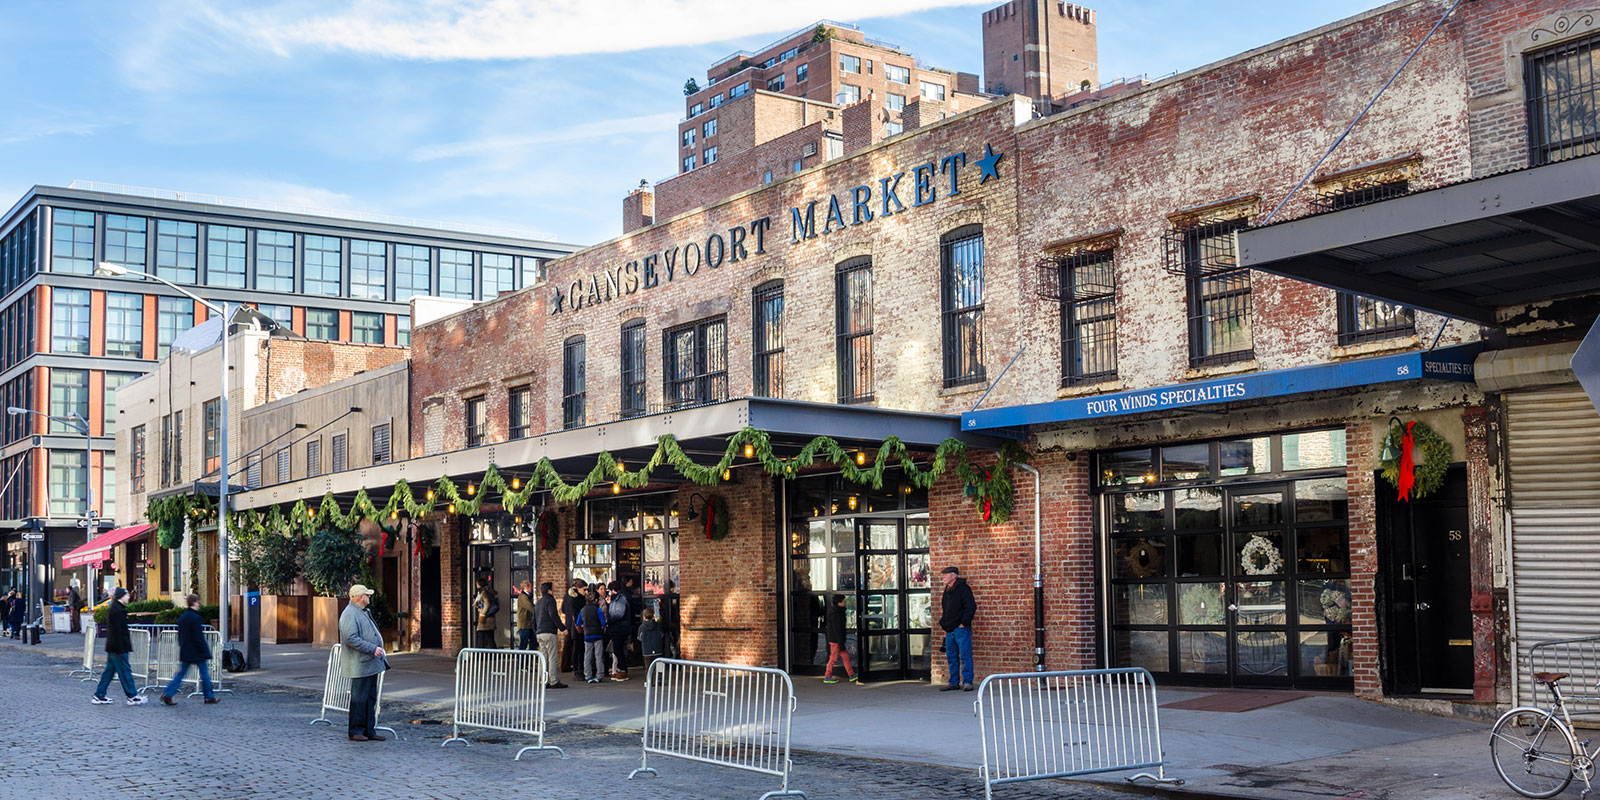 Meatpacking District, New York City (Alpegor/Dreamstime)